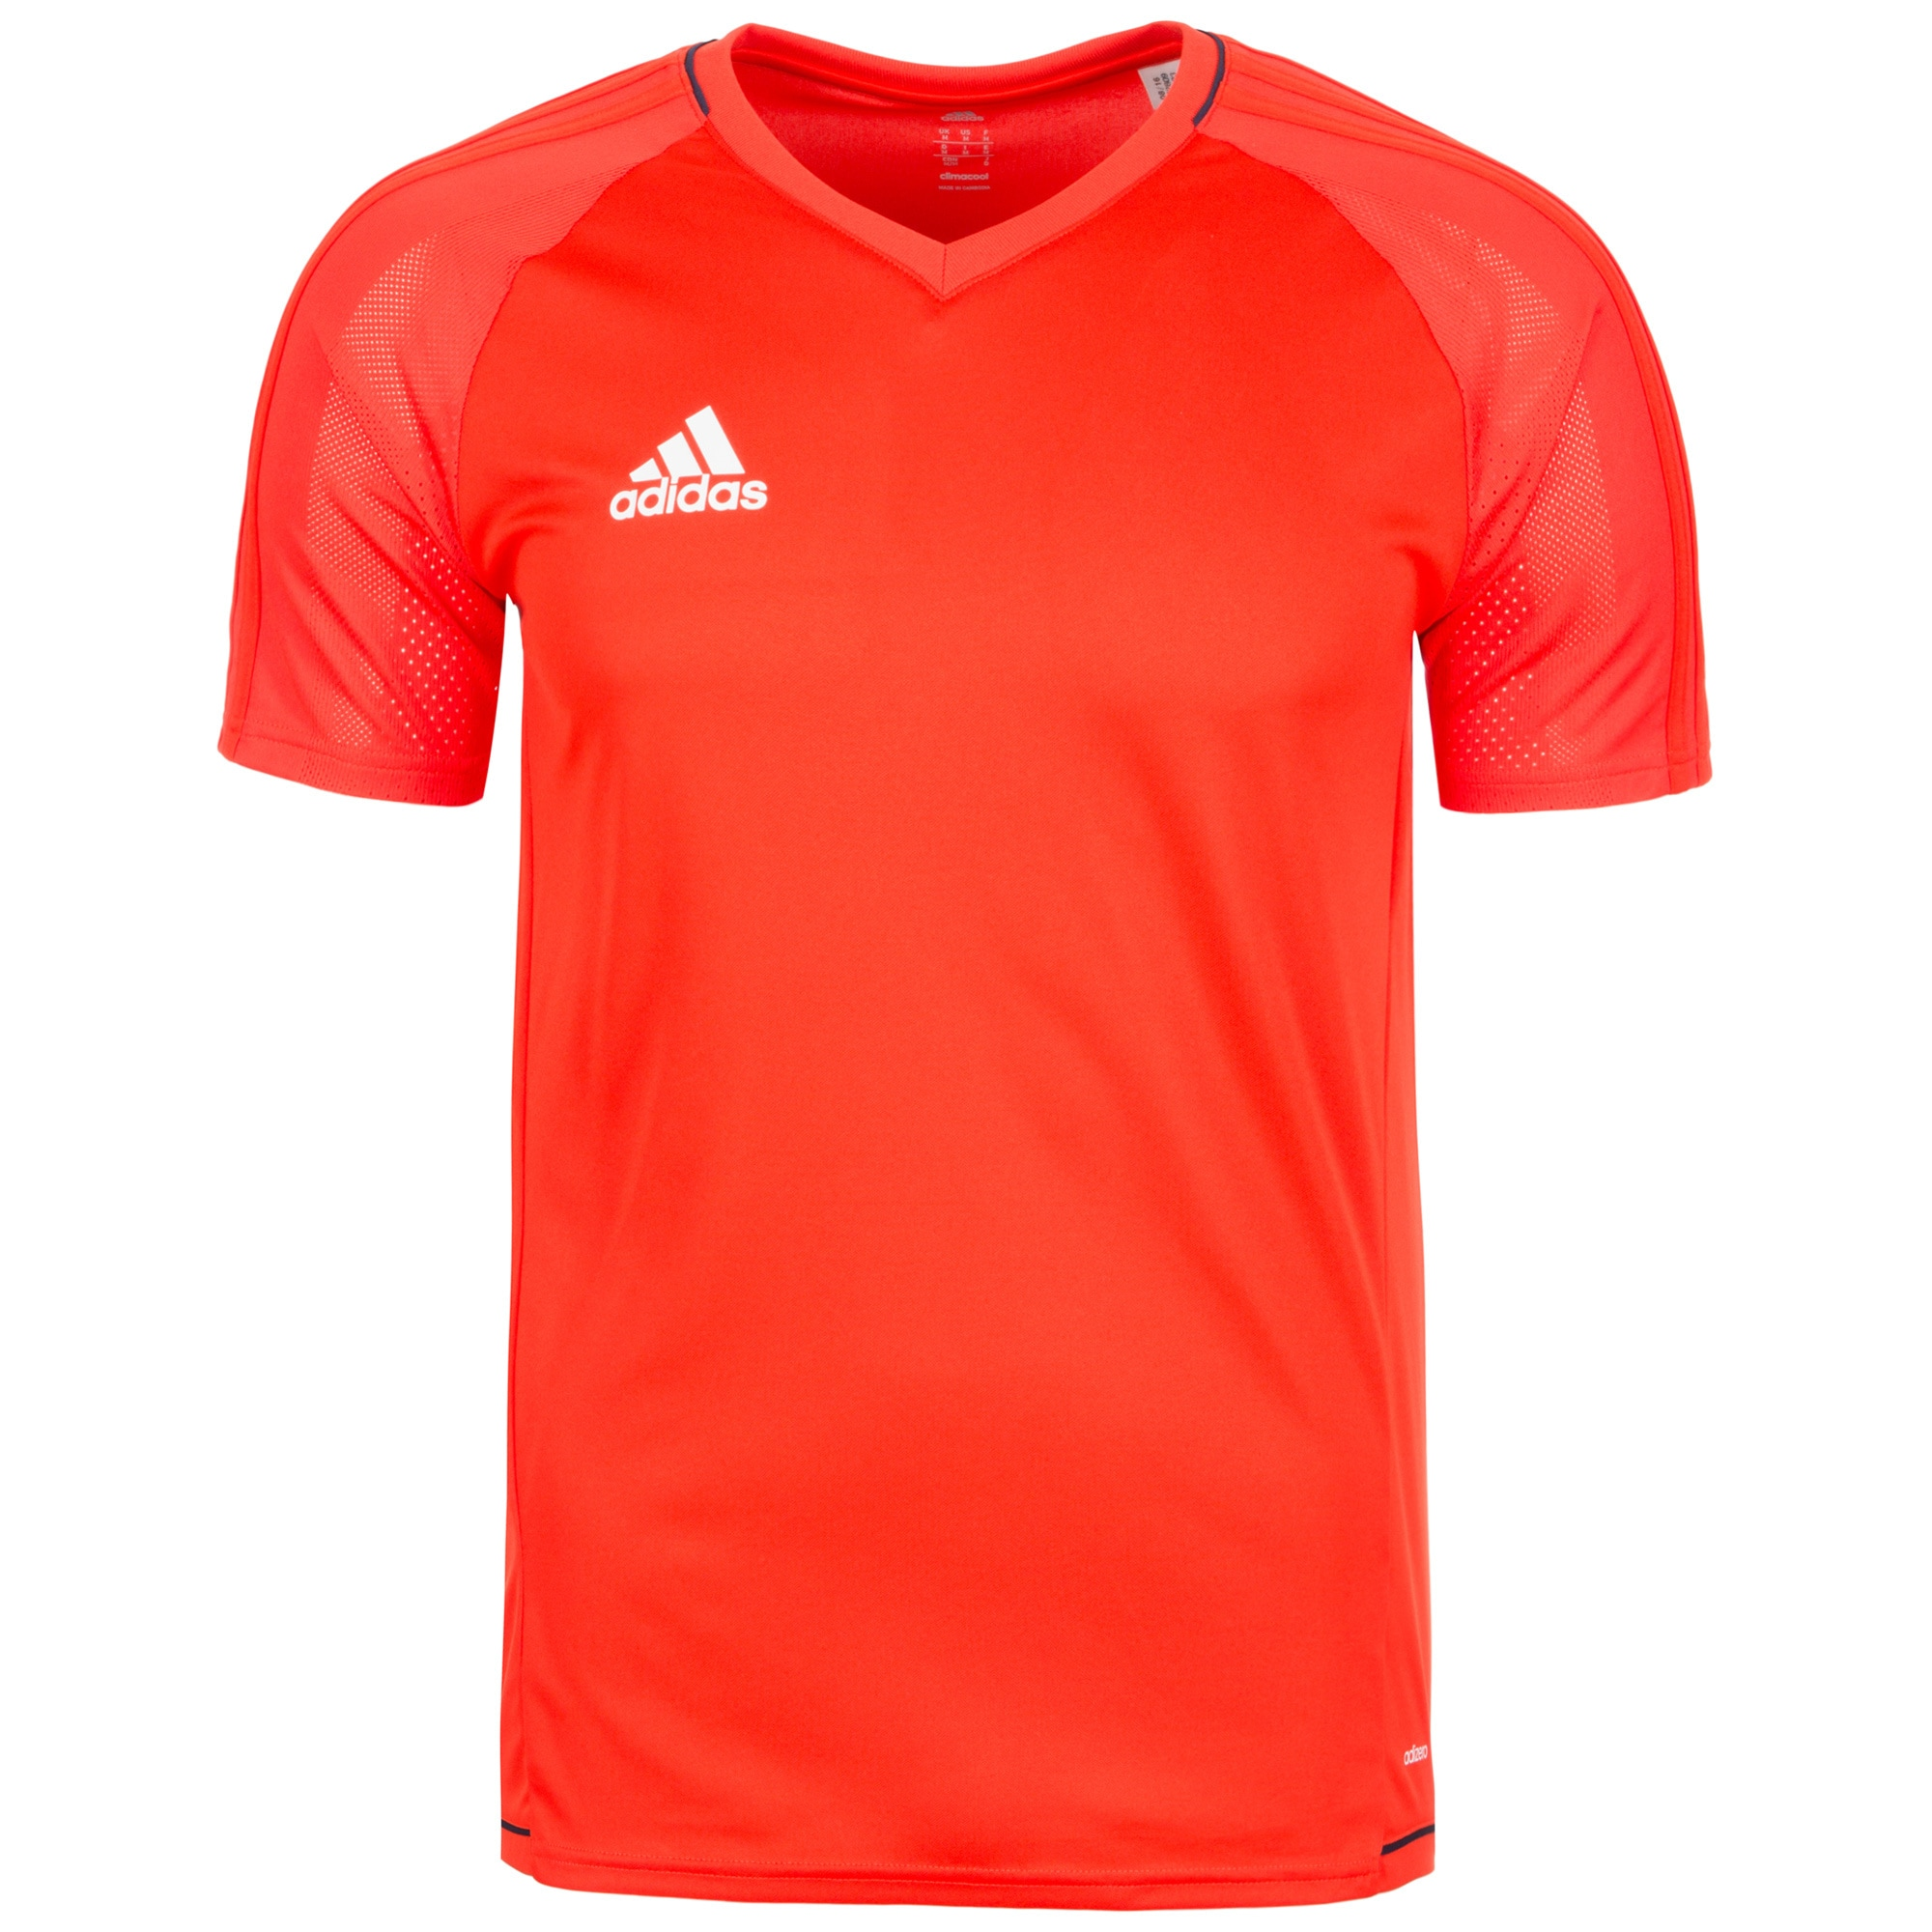 adidas Performance Trainingsshirt Tiro 17 orange Herren Sport Shirts Sportbekleidung T-Shirts